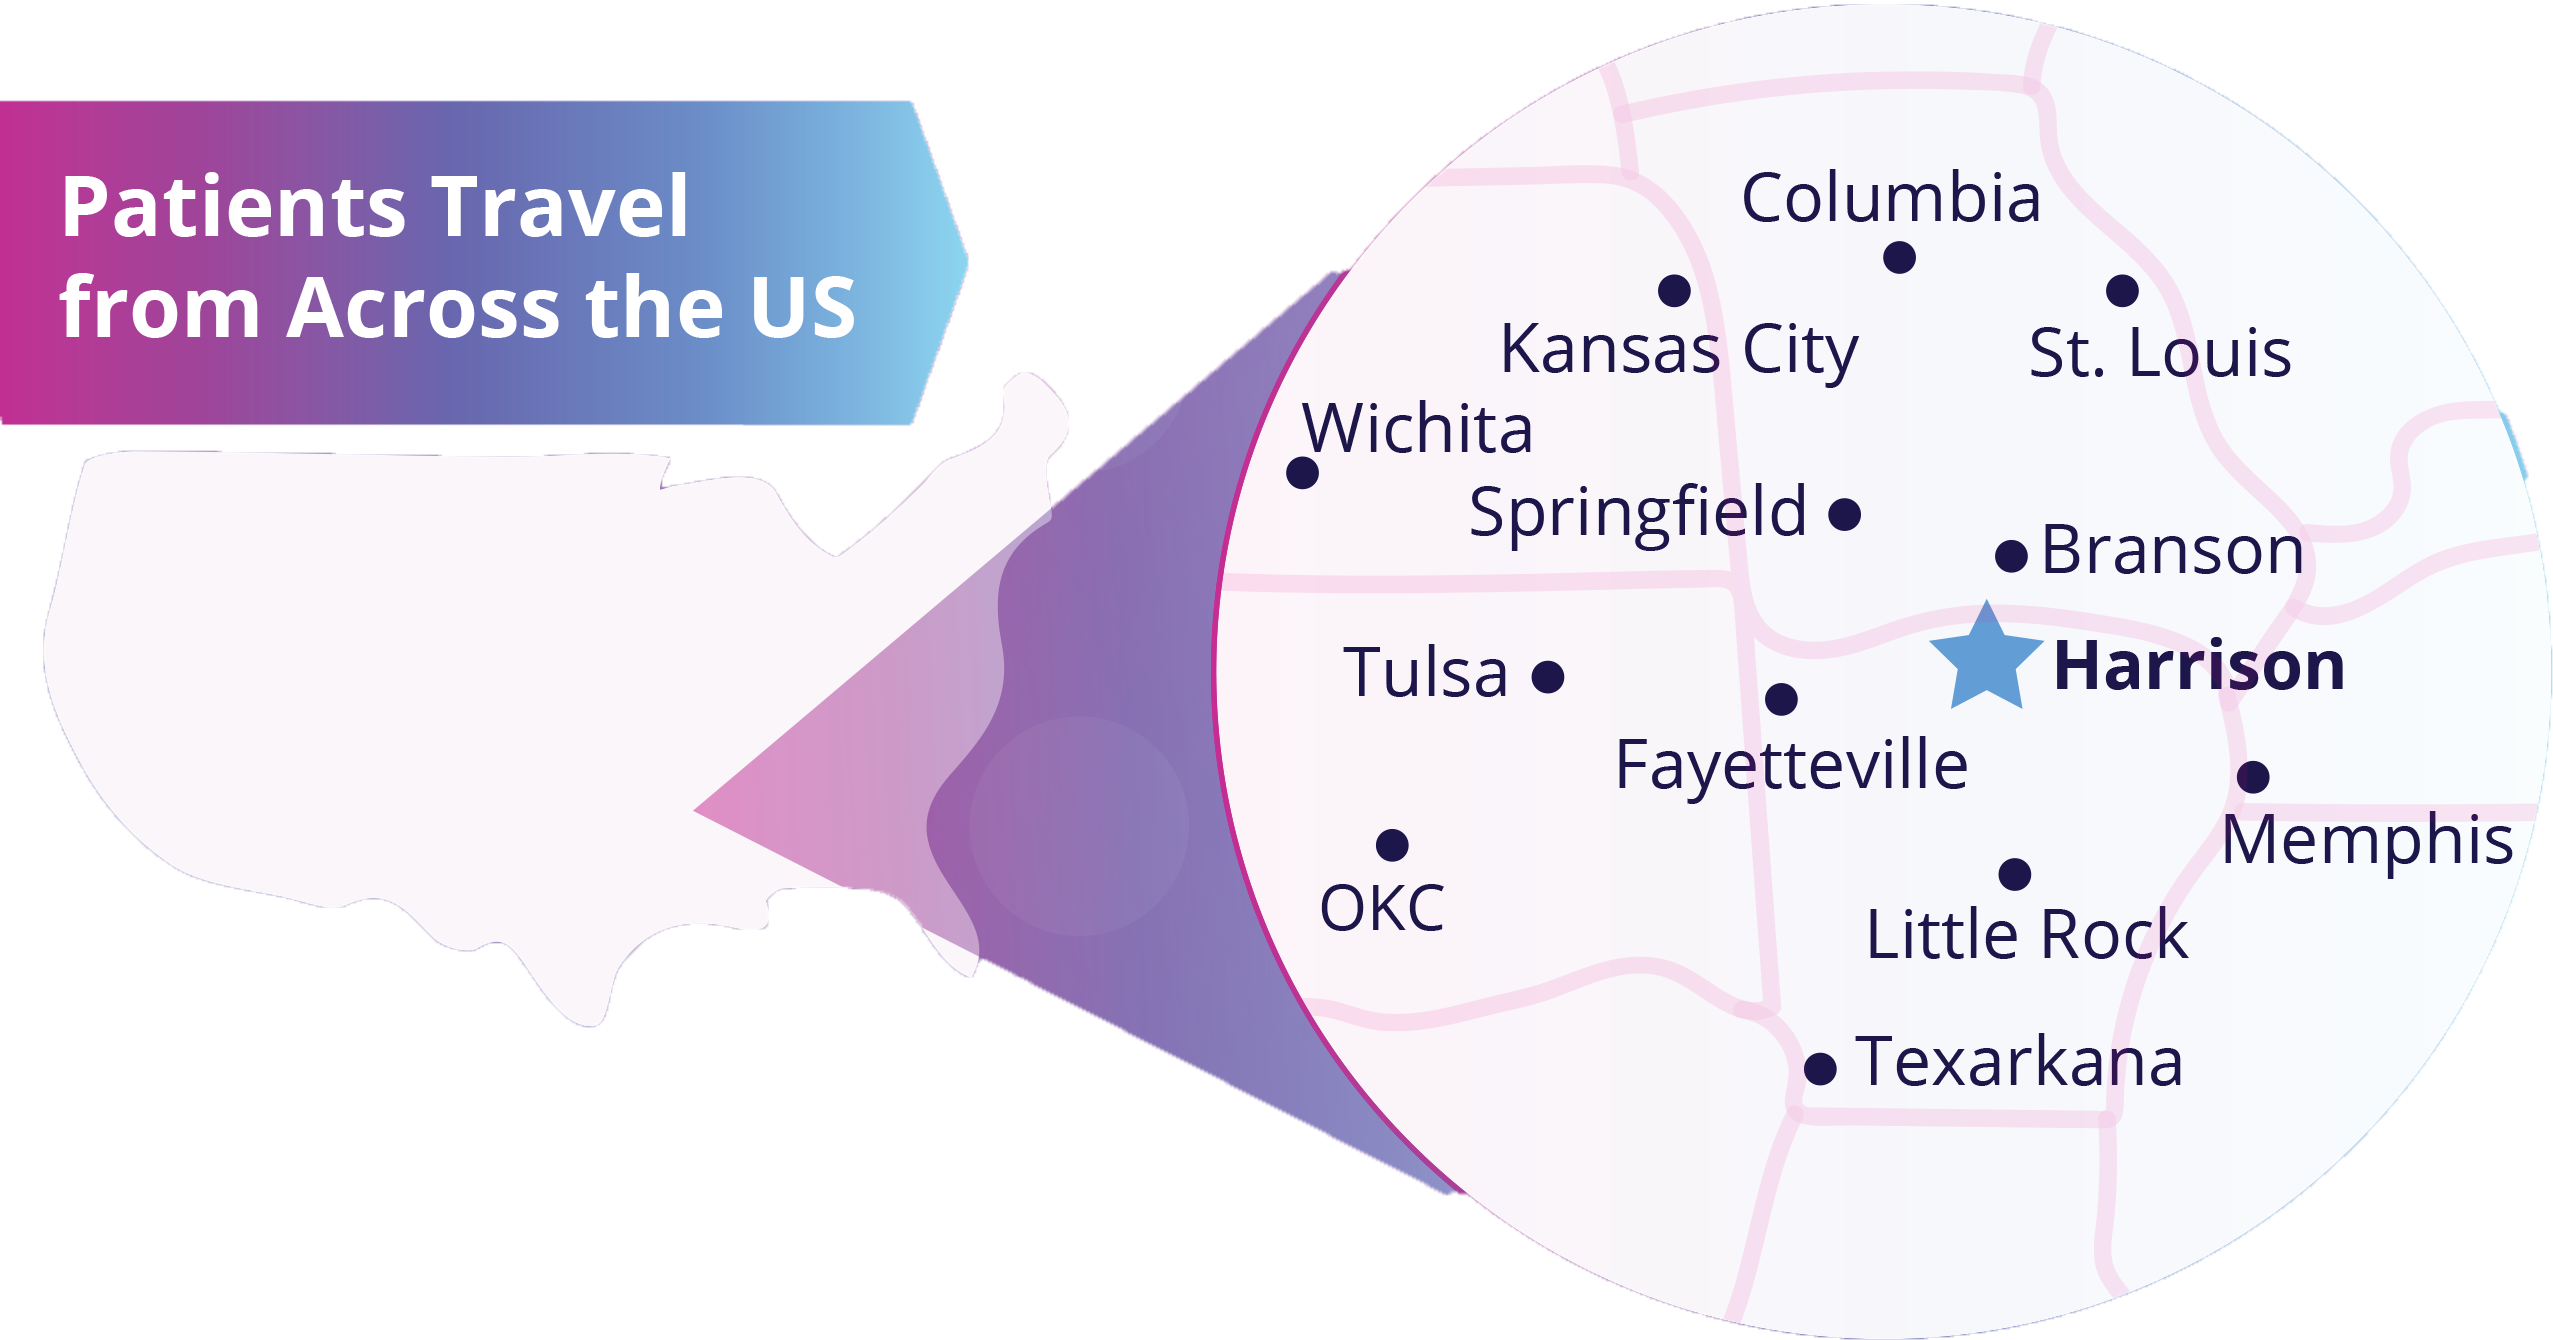 Patients travel from across the US